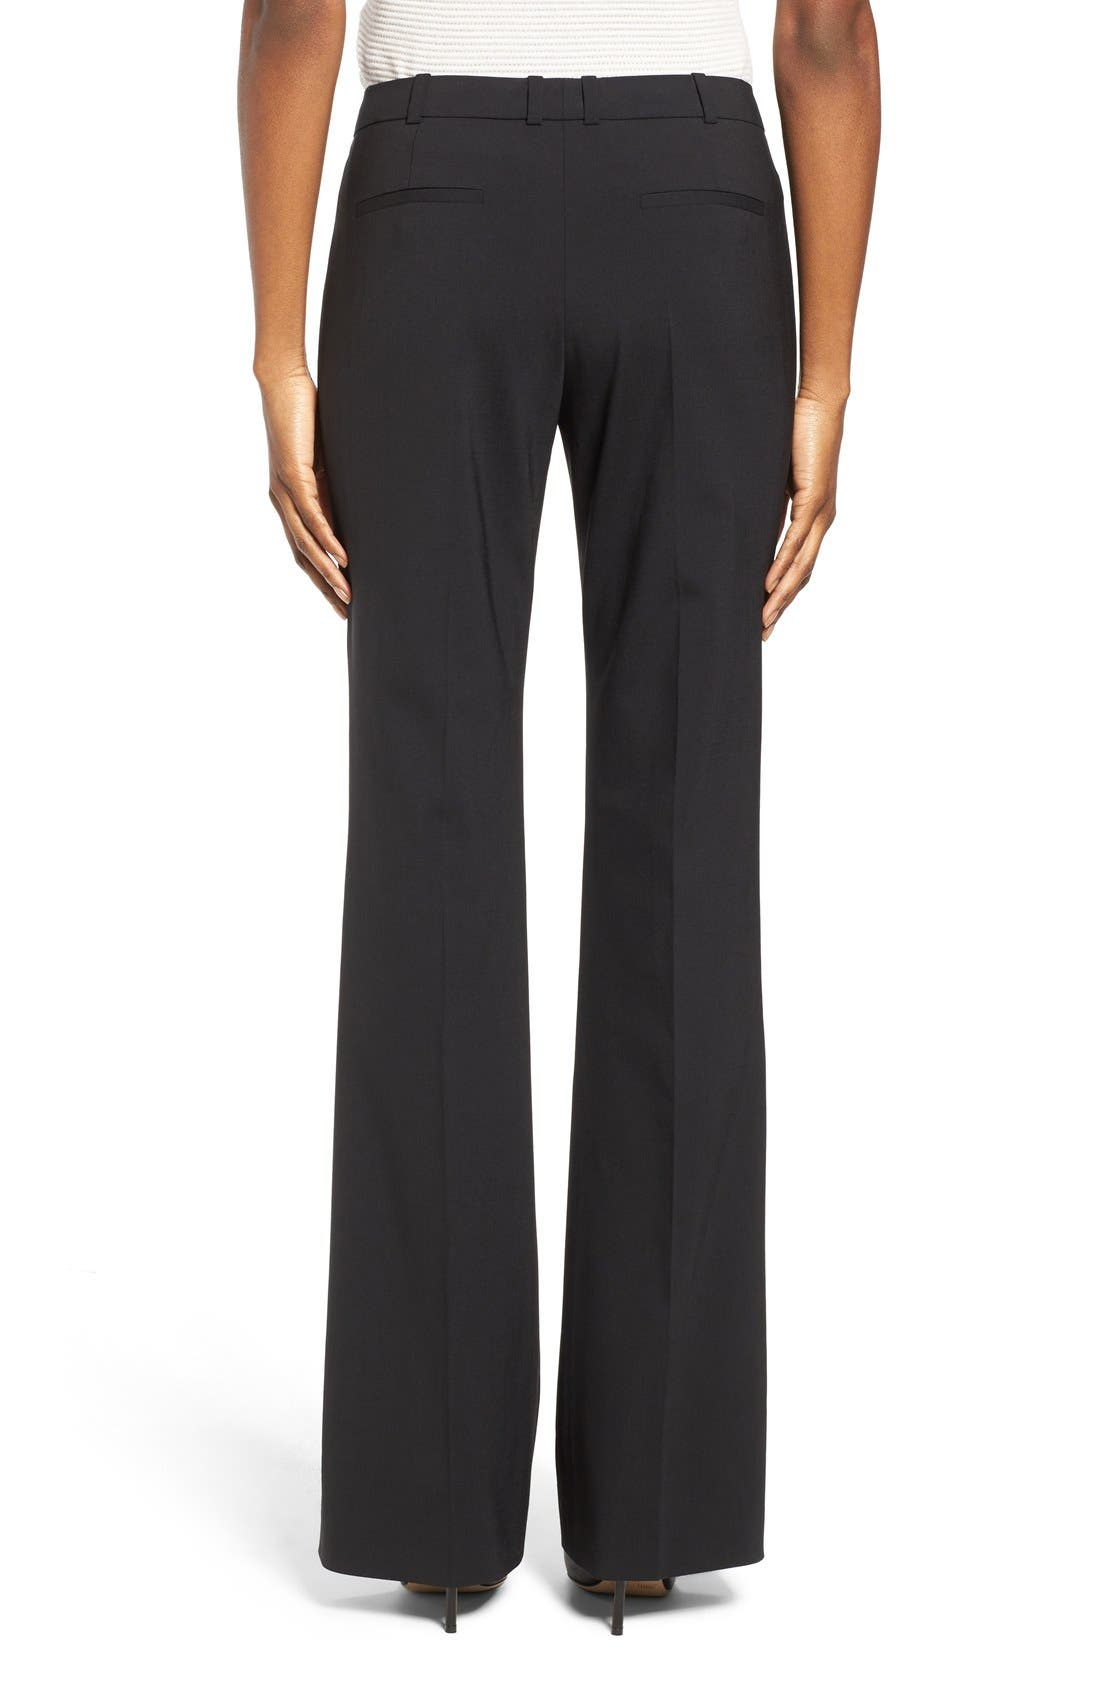 Tulea3 Tropical Stretch Wool Trousers,                             Alternate thumbnail 2, color,                             Black